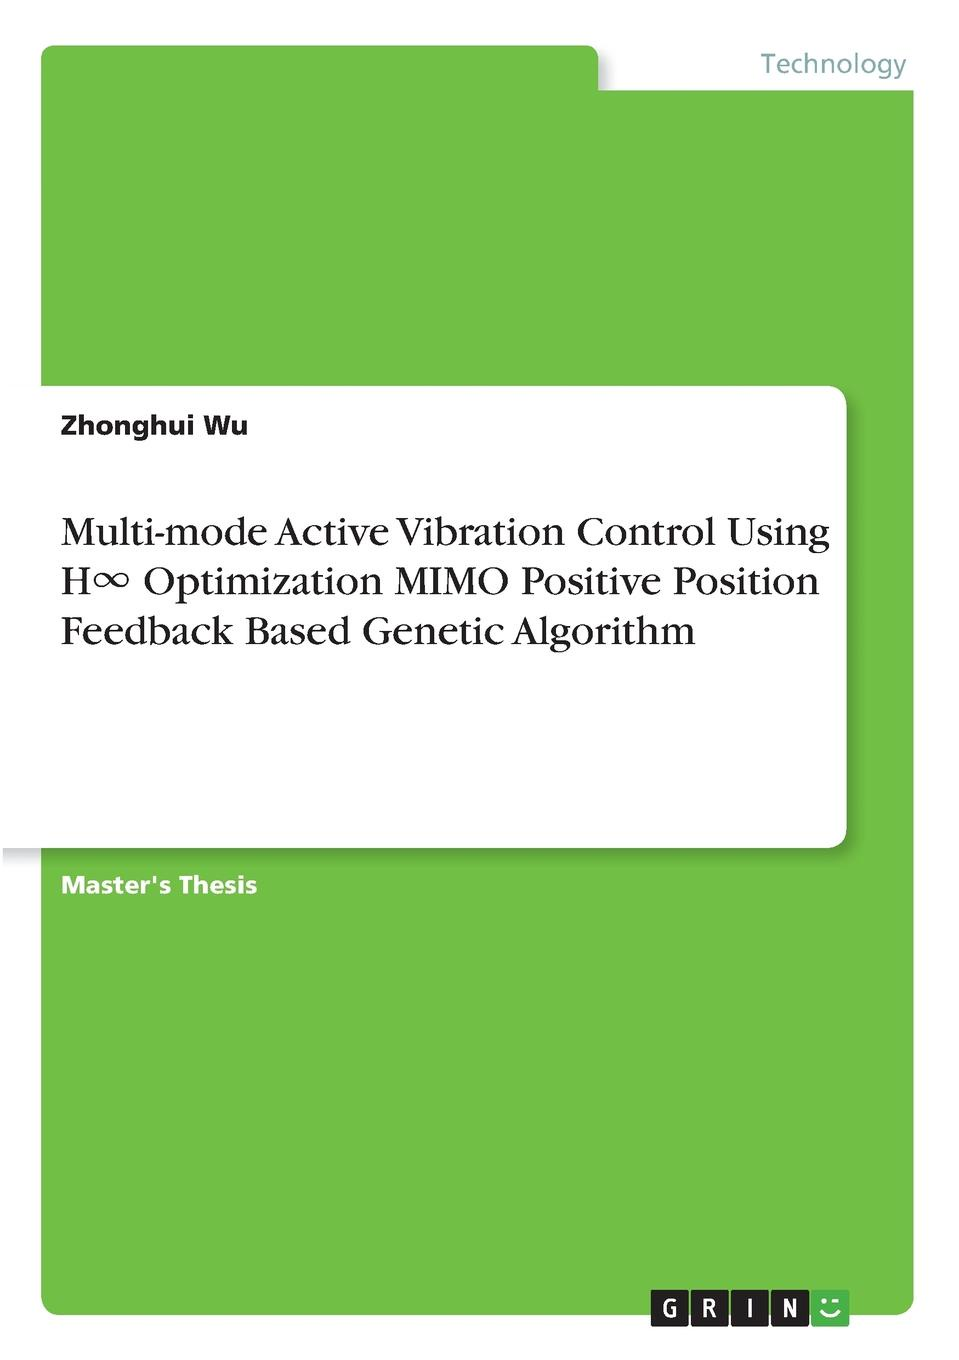 Zhonghui Wu Multi-mode Active Vibration Control Using H. Optimization MIMO Positive Position Feedback Based Genetic Algorithm mohammad shahidehpour handbook of electrical power system dynamics modeling stability and control